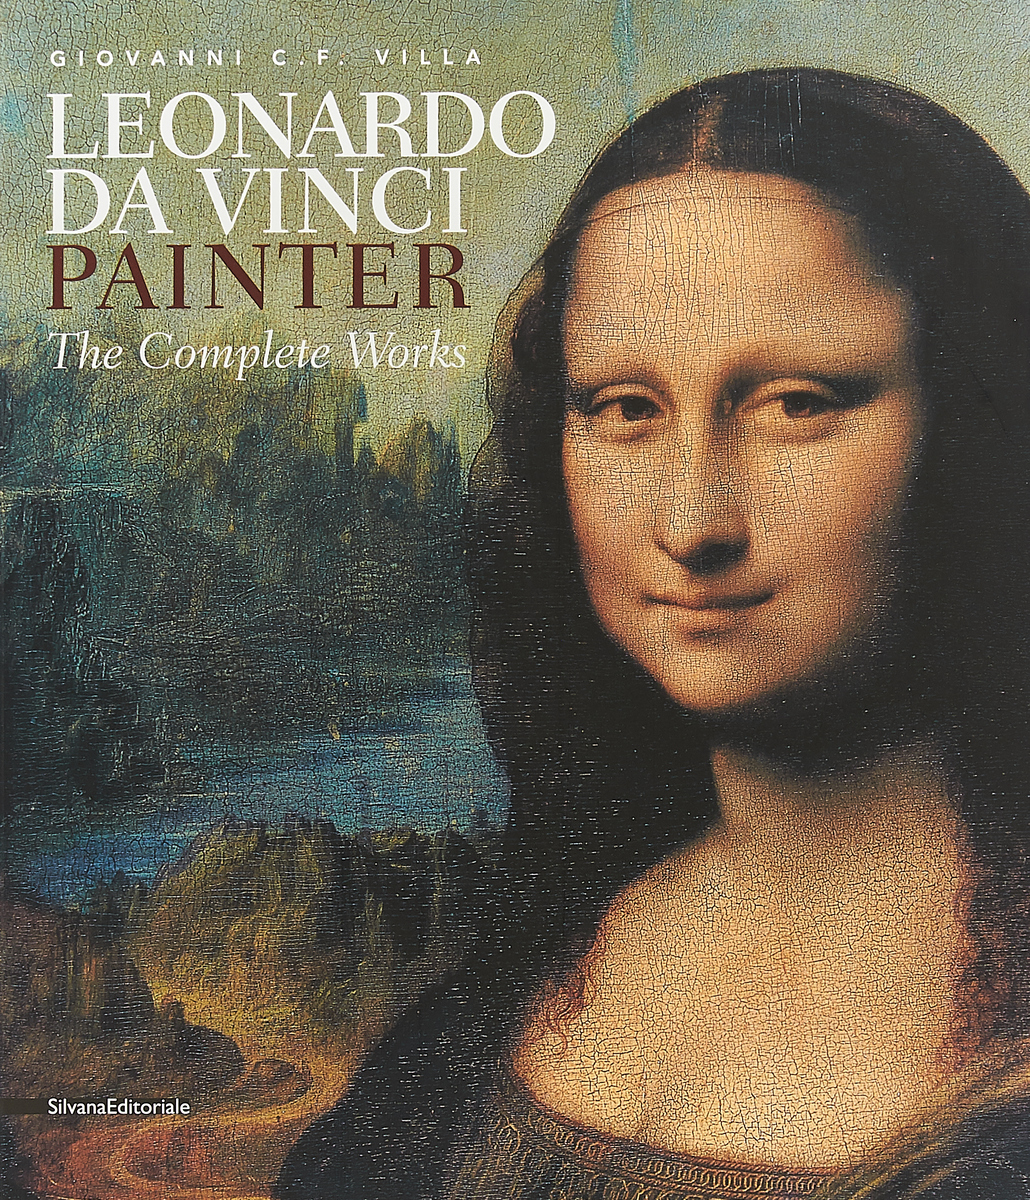 Leonardo da Vinci. Painter. The Complete Works leonardo da vinci мост поворотный модель d 014